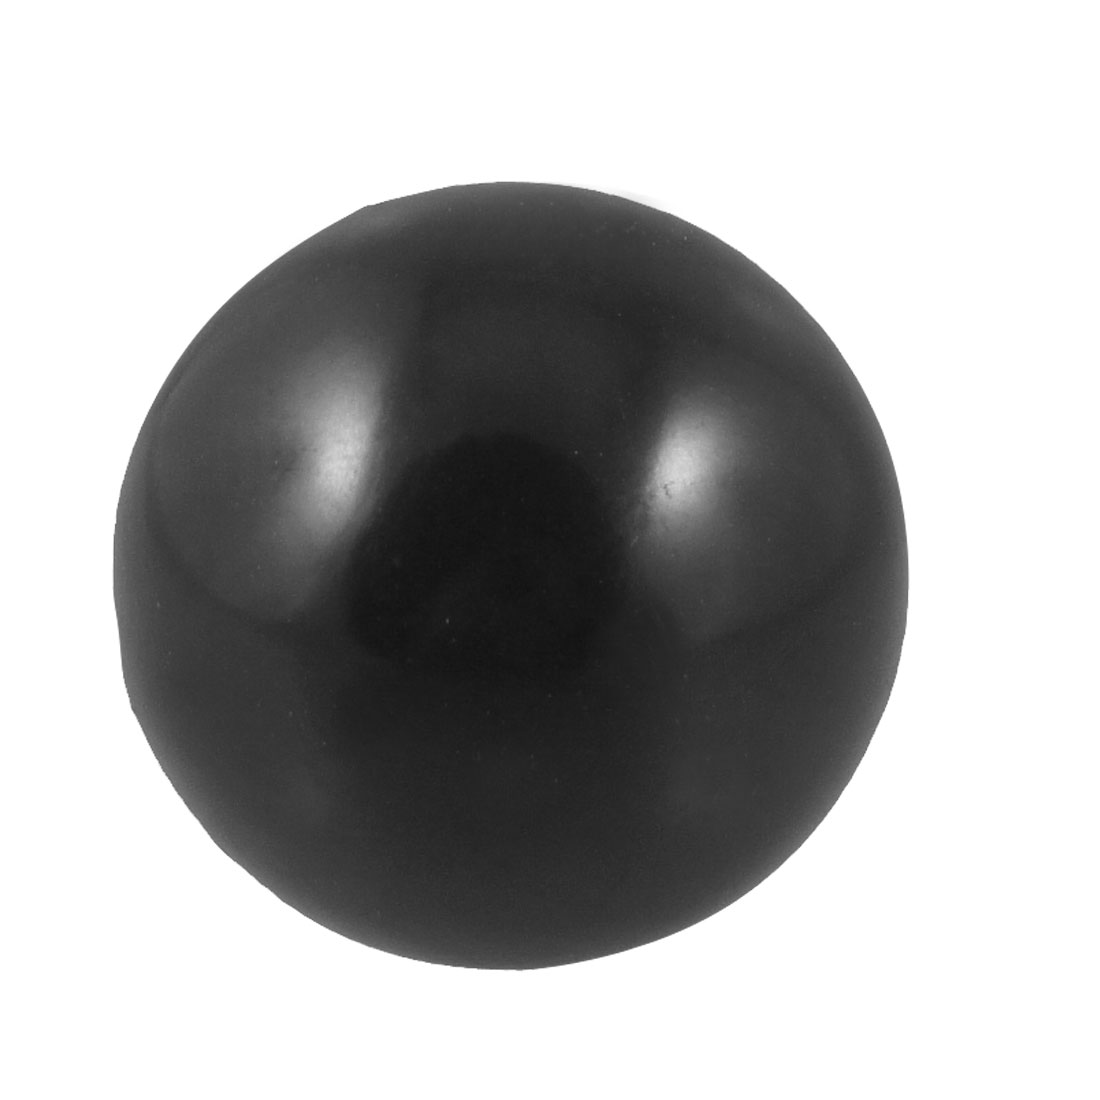 7mm Thread Hole 32mm Diameter Plastic Tapped Handling Ball Knob Black